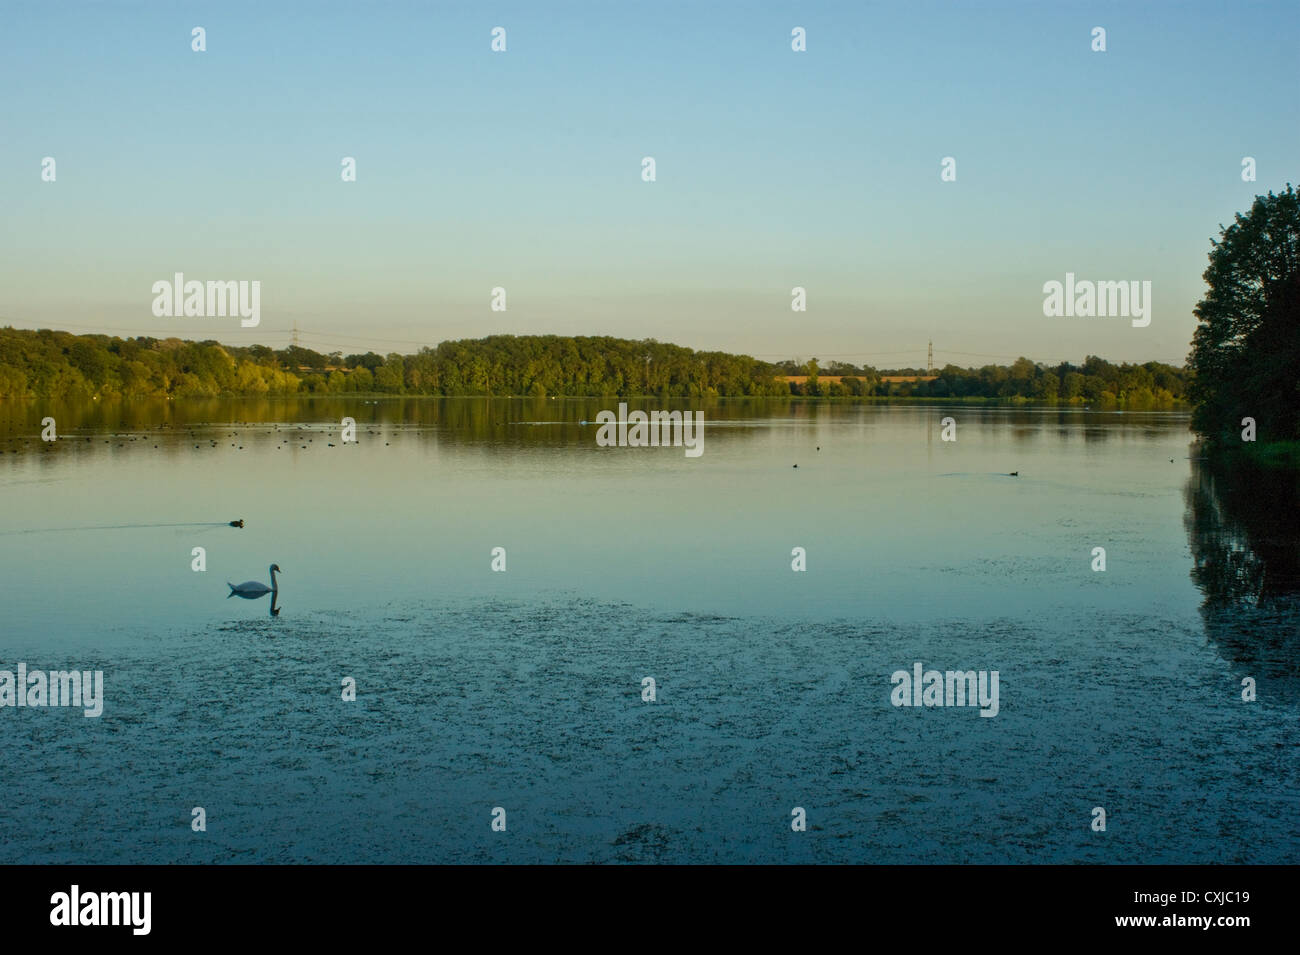 Evening at Swithland Reservoir, Leicestershire - Stock Image